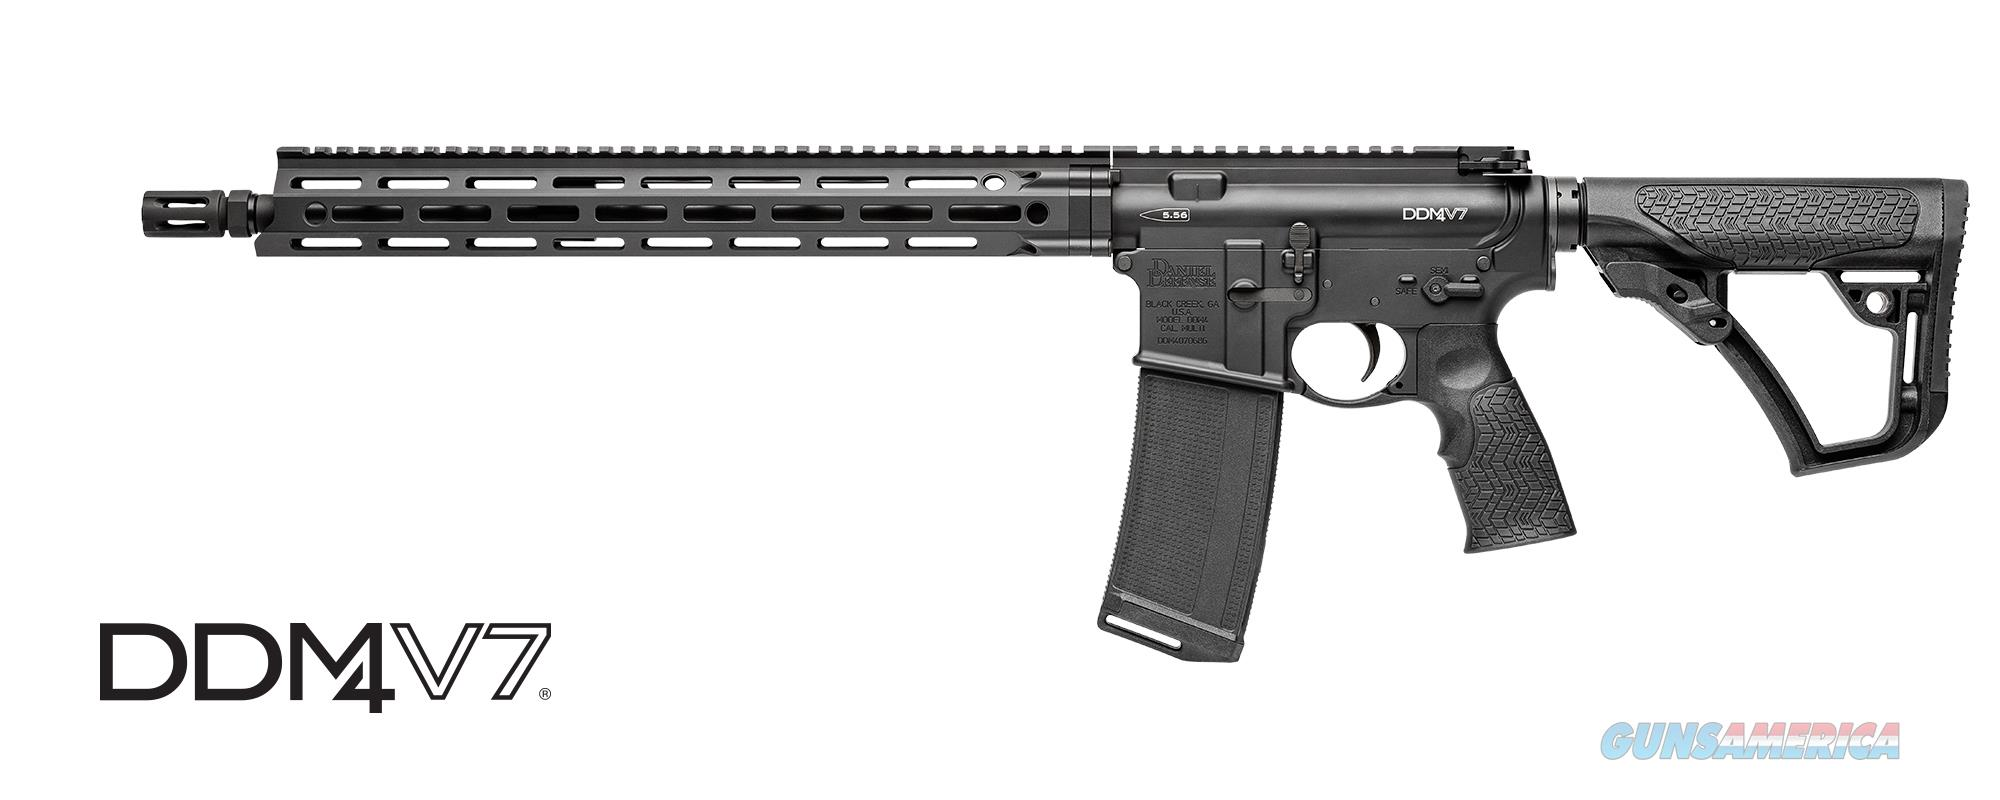 Daniel Defense M4 V7 5.56MM  Guns > Rifles > Daniel Defense > Complete Rifles